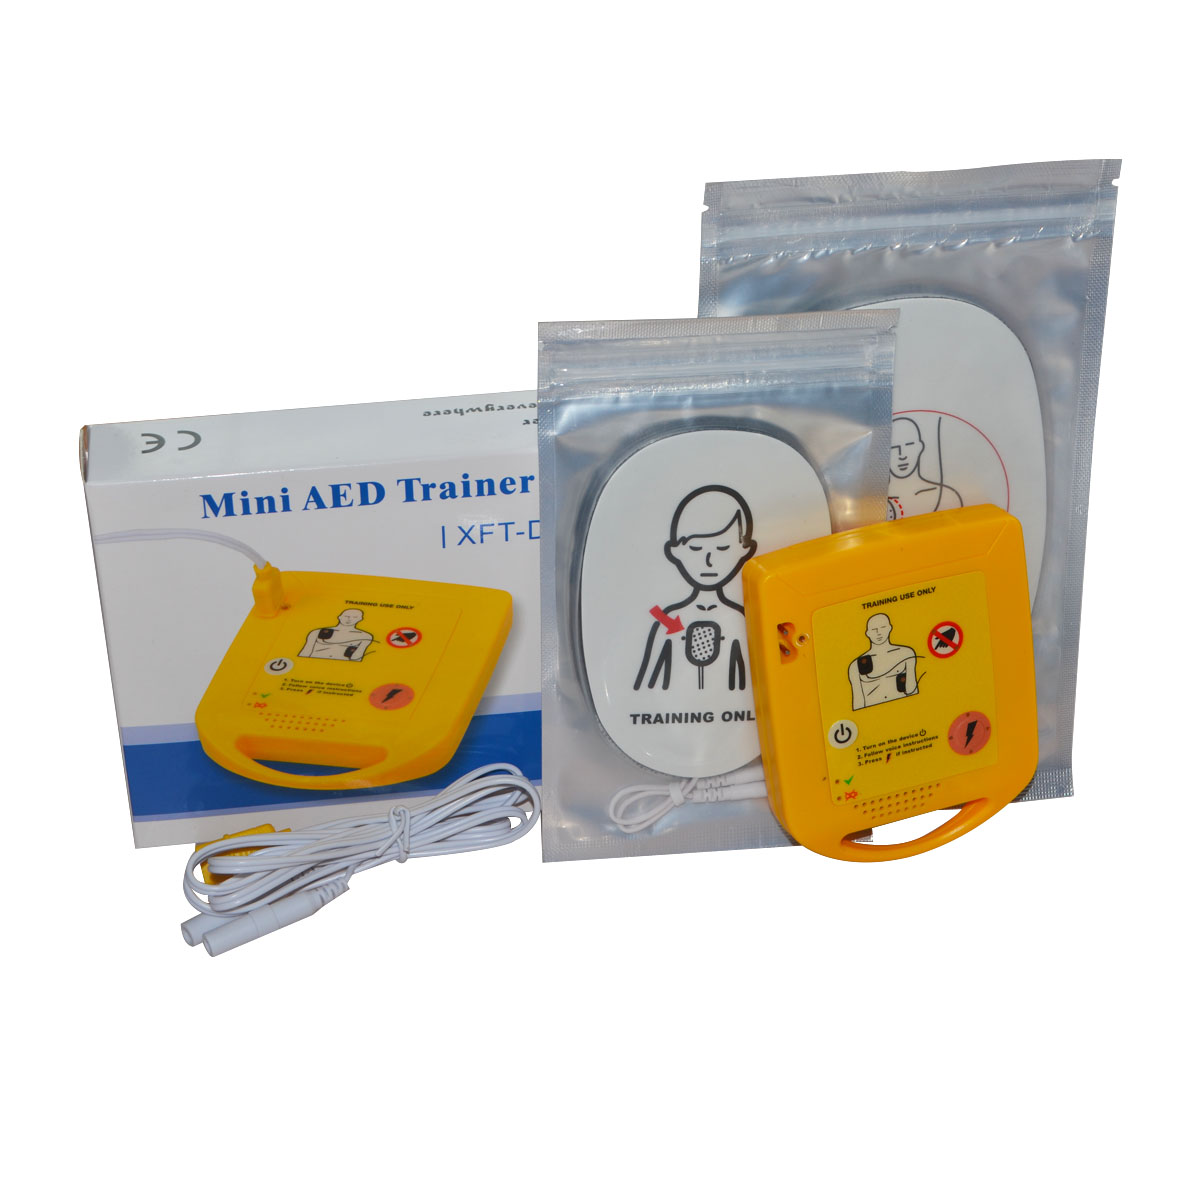 AED Trainer Mini Automatic External Defibrillator XFT First Aid Training Kit Training Machine In Spanish 1